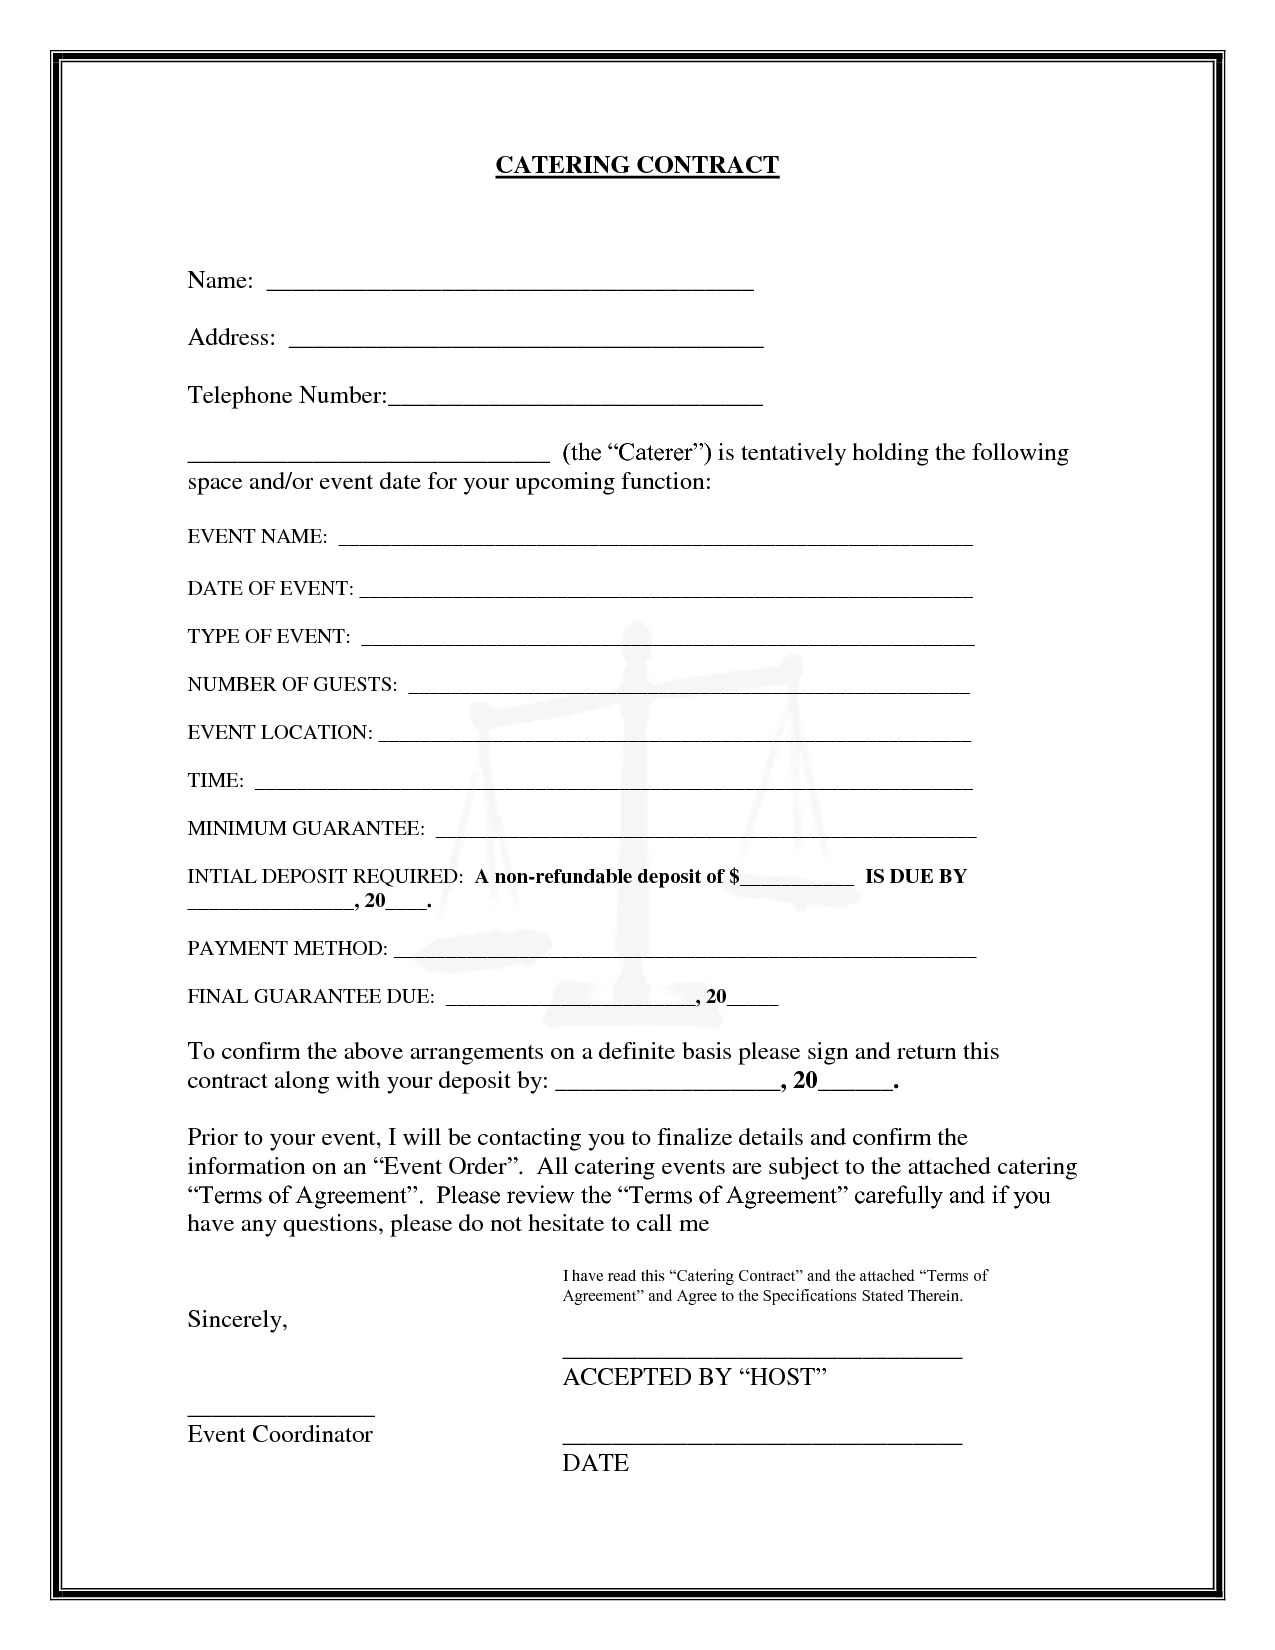 Catering Contract Example